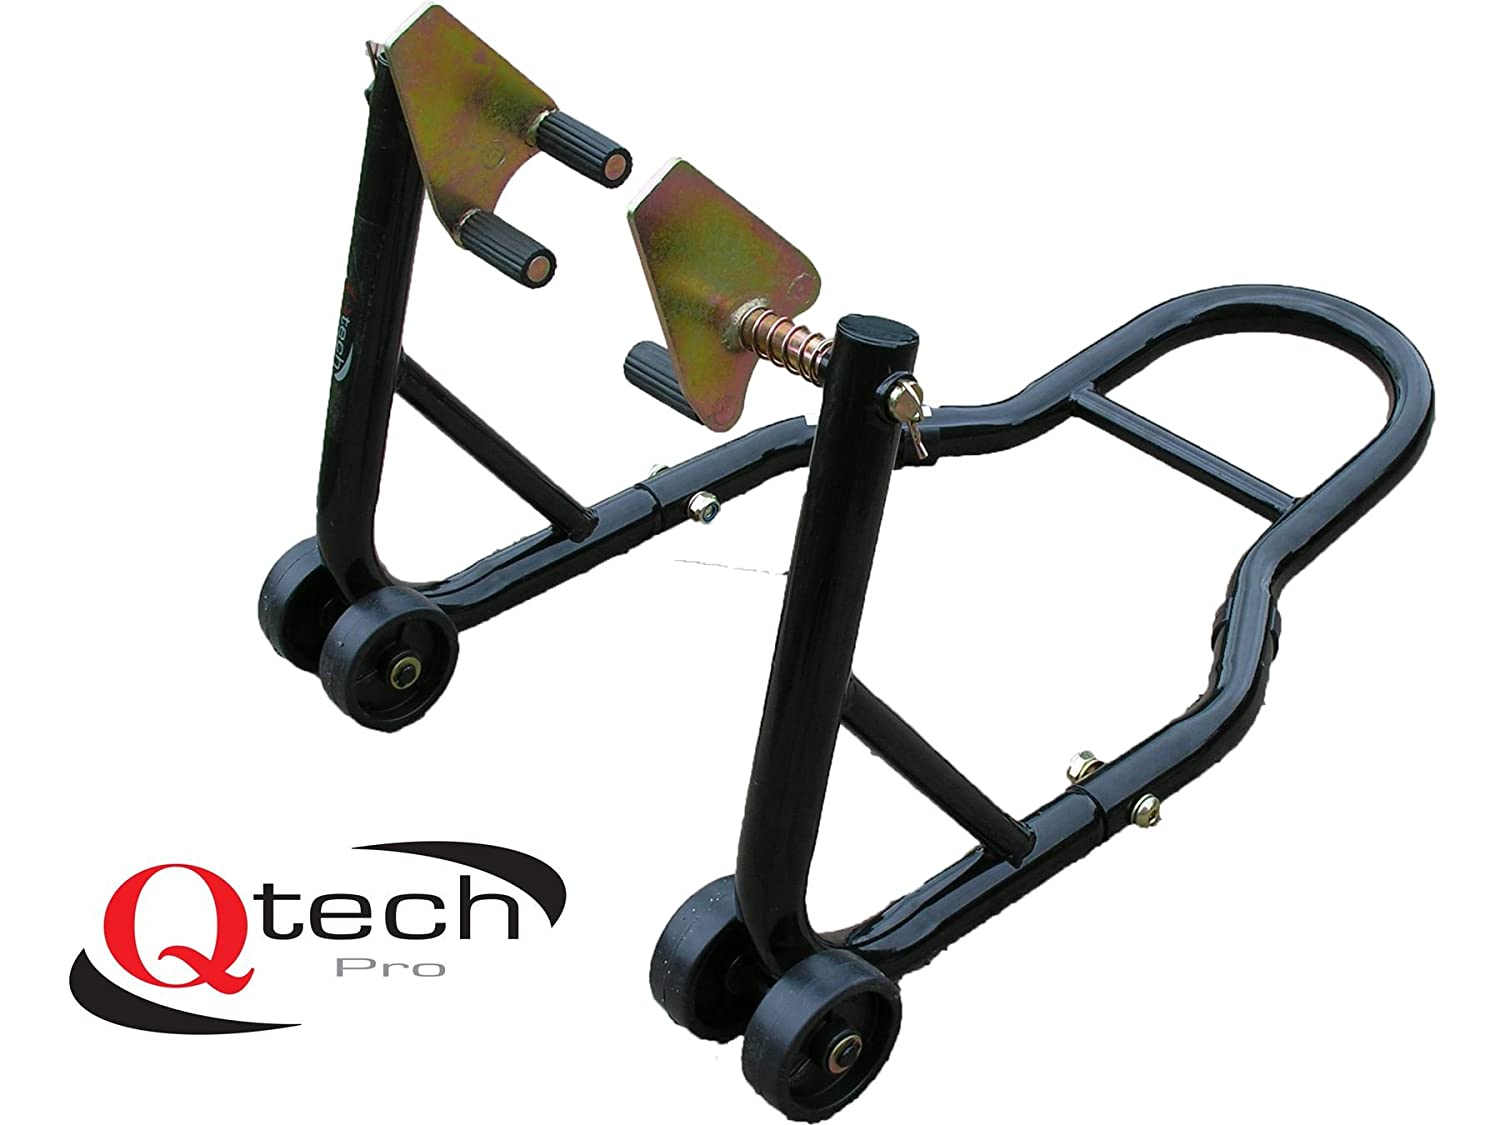 Qtech Motorcycle Motorbike Front Wheel Fork Universal Lift Paddock STAND with 200kg Lift Capacity Headstock Head Track Head Lift